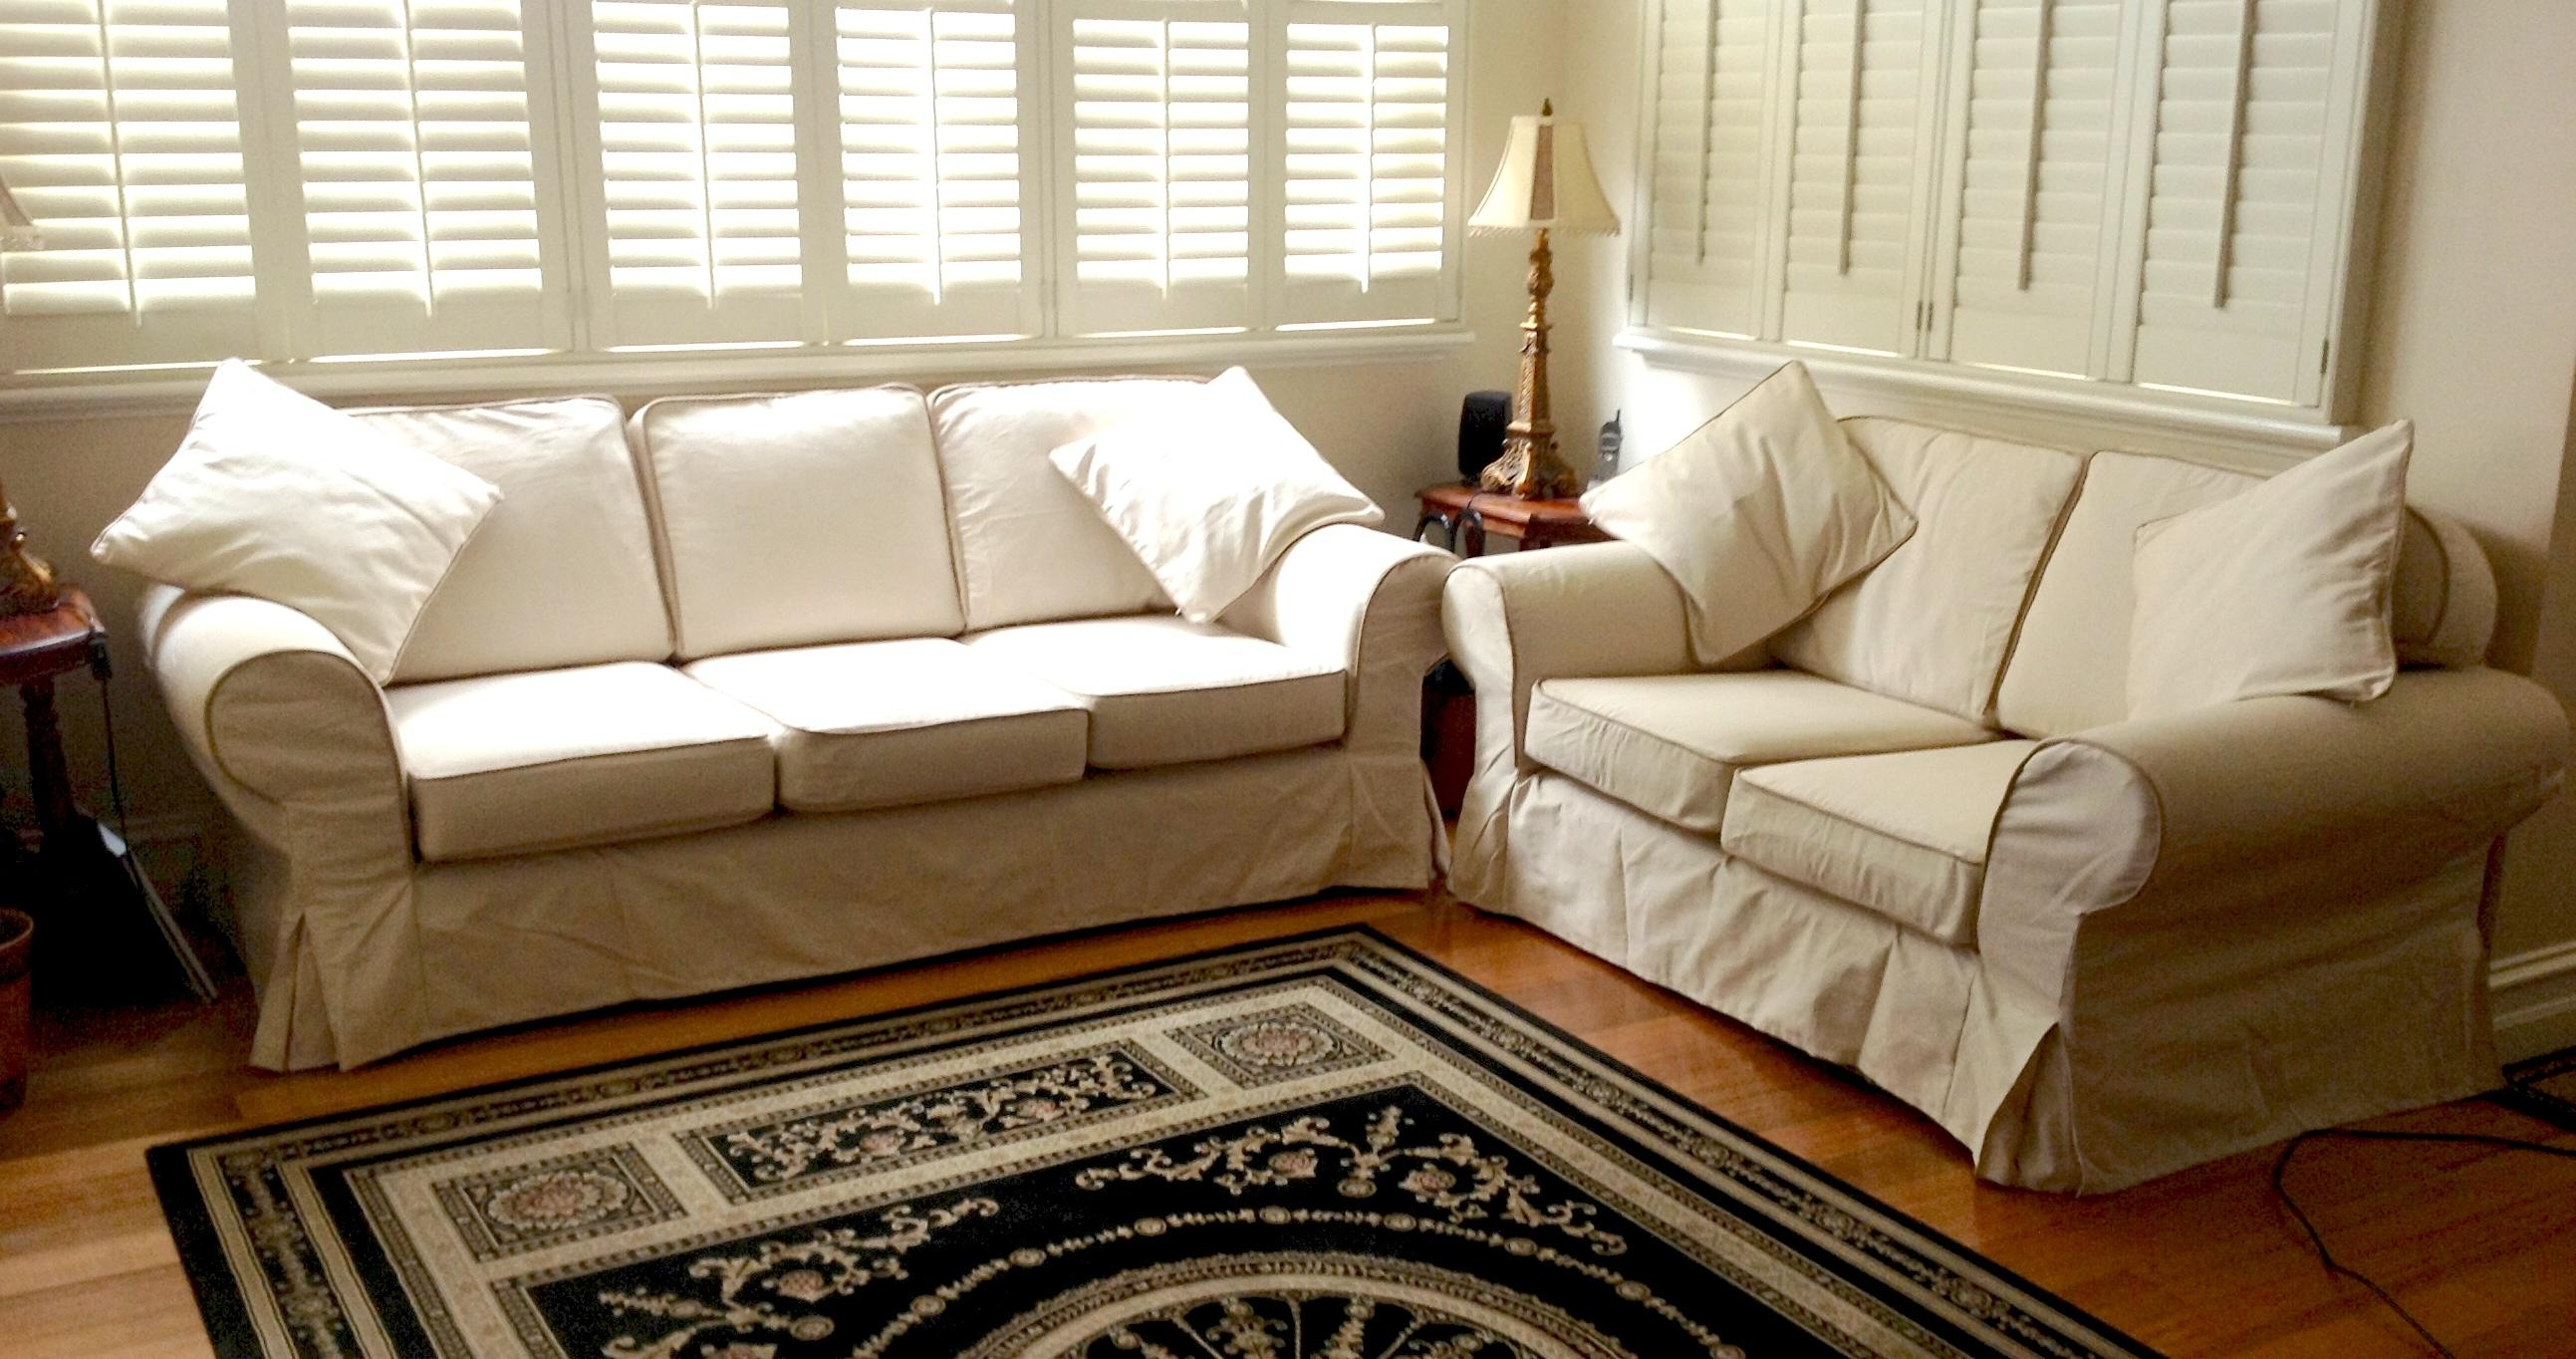 Custom Slipcovers And Couch Cover For Any Sofa Online Within Slipcovers For Sofas And Chairs (Image 6 of 20)